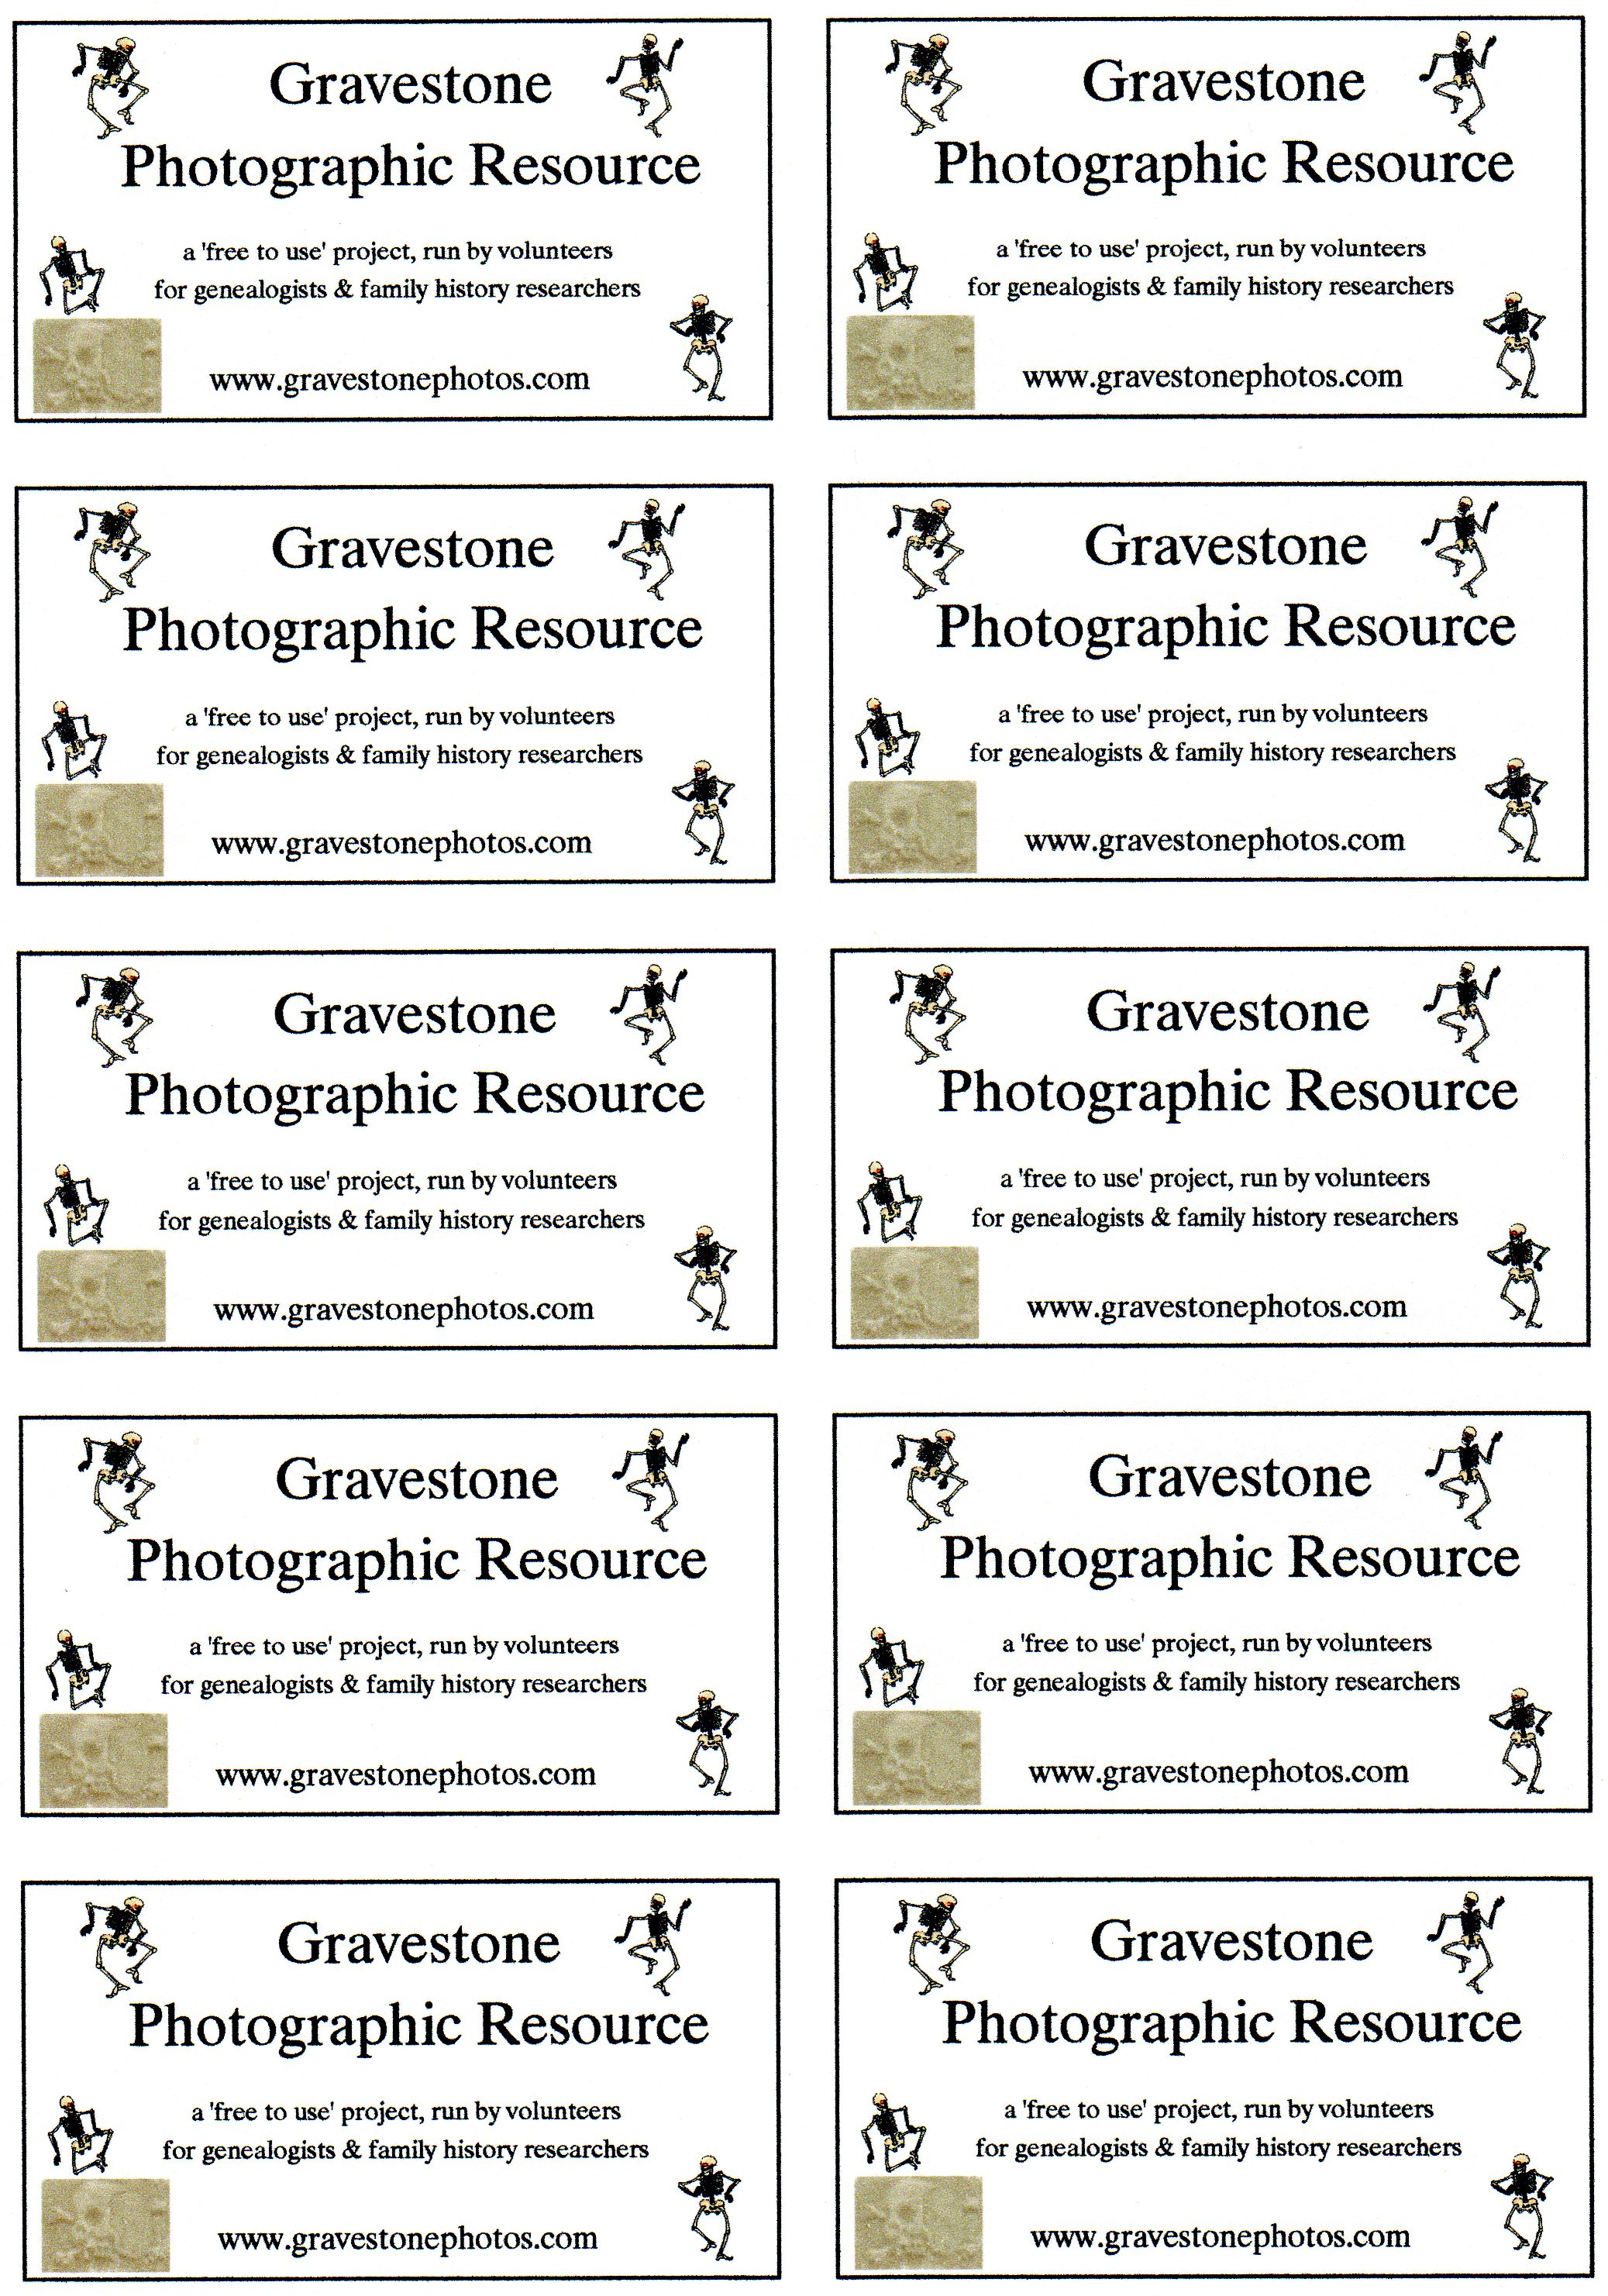 business card template a4 28 images gravestone photographic